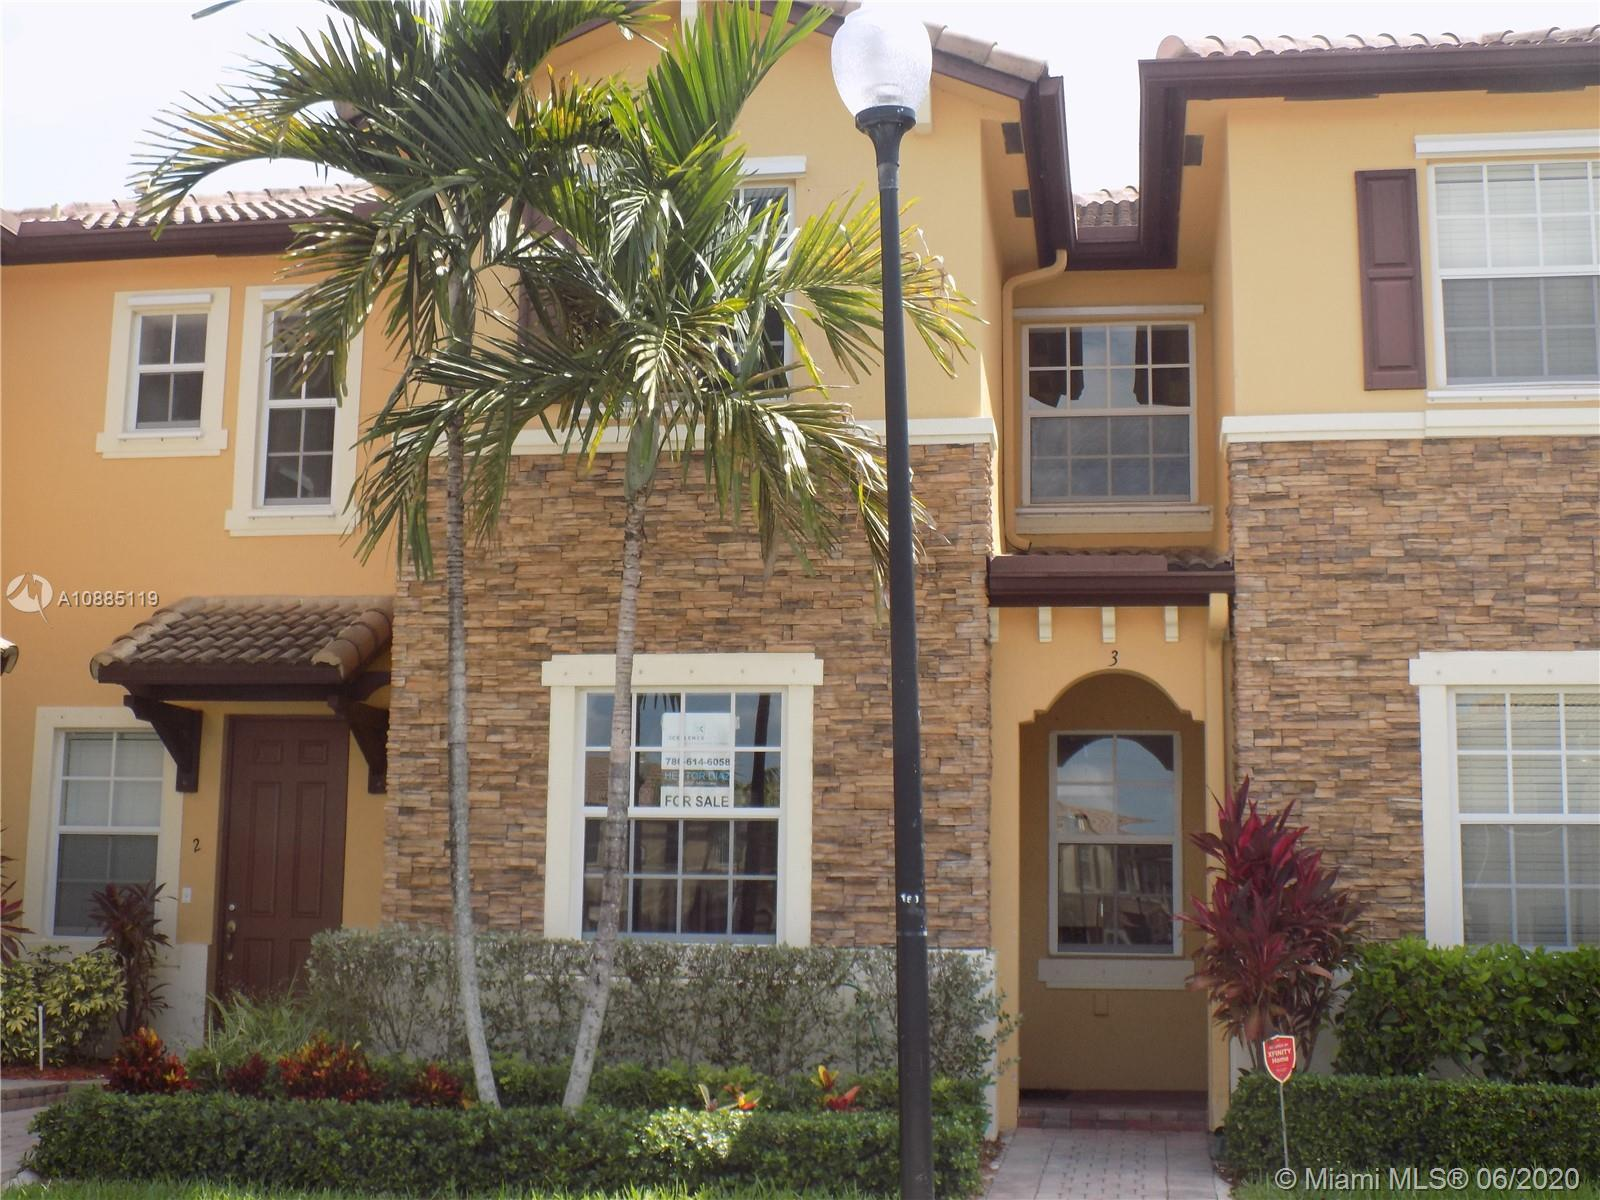 Back in the Market. Beatiful Condo-Townhouse. 3 Bedroom with 2.5 baths at The Shores Subdivision of Isle of Bay Shore Built by Lennard, safe community with A+ Schools and recreation places like Black Point Marina. Perfect for a first time buyers, Beautiful Lake view, two story home built in 2011. Tile downstairs, formal dining room, great Kitchen, carpet on  2nd floor.  Property is in moving condition. No reserves. Minimum 10% down. Seller motivated. The property pass inspection and Appraisal.